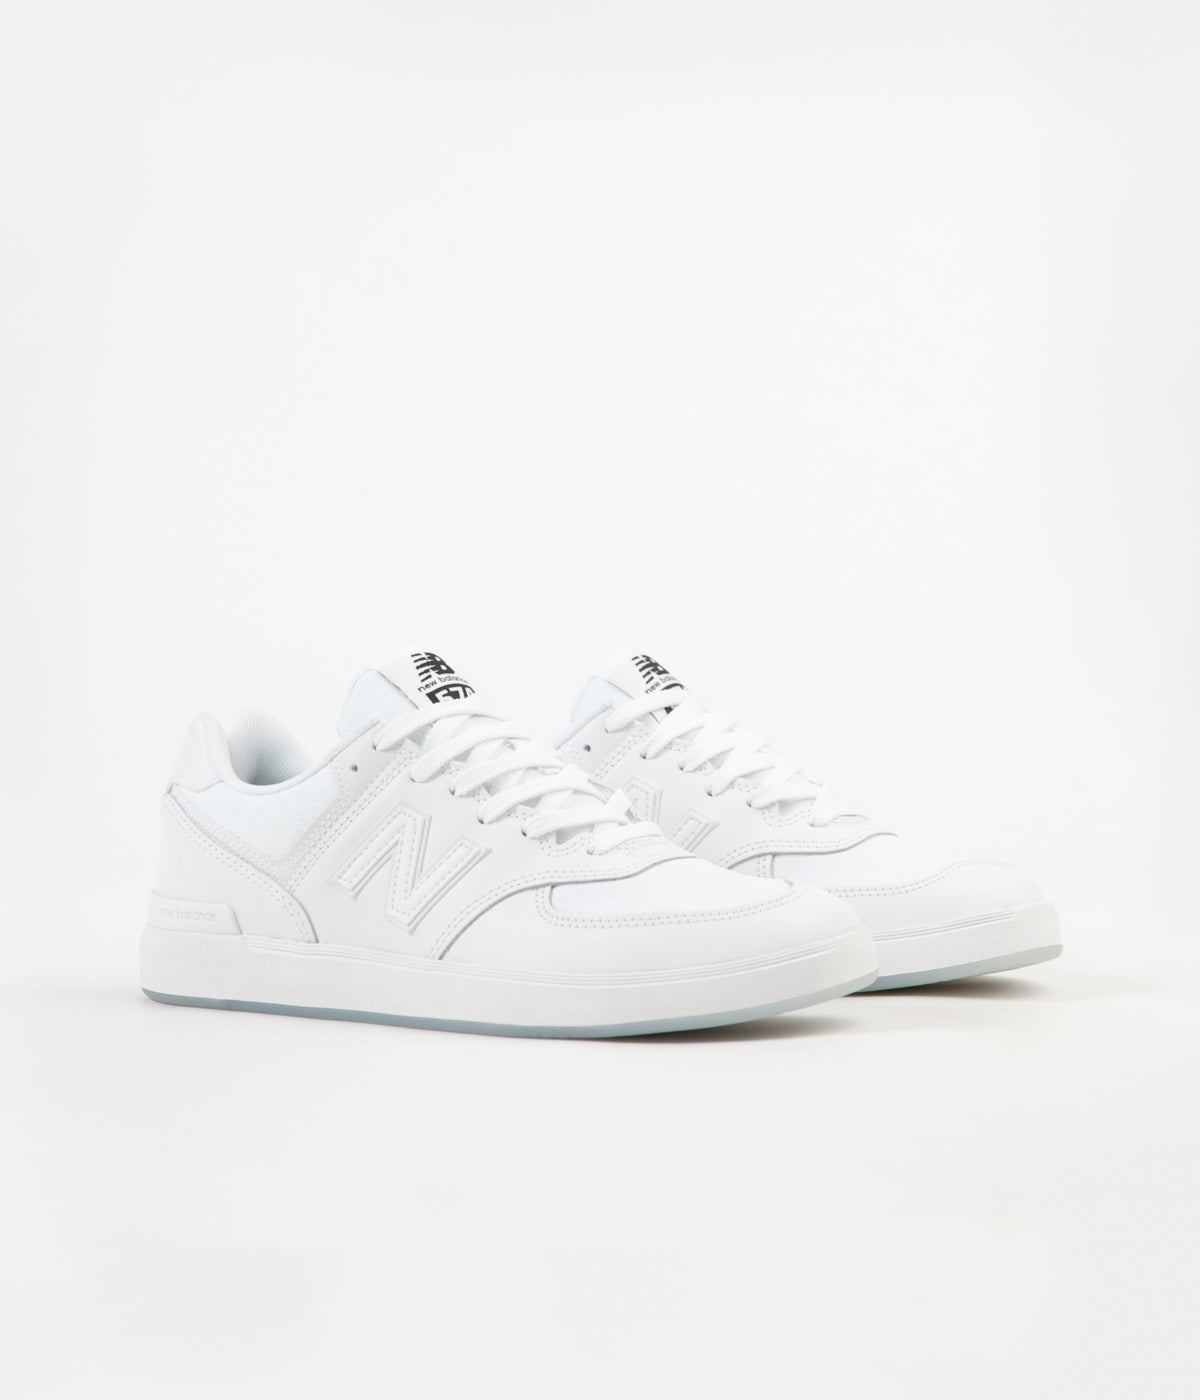 New Balance All Coasts 574 Shoes White White | Flatspot